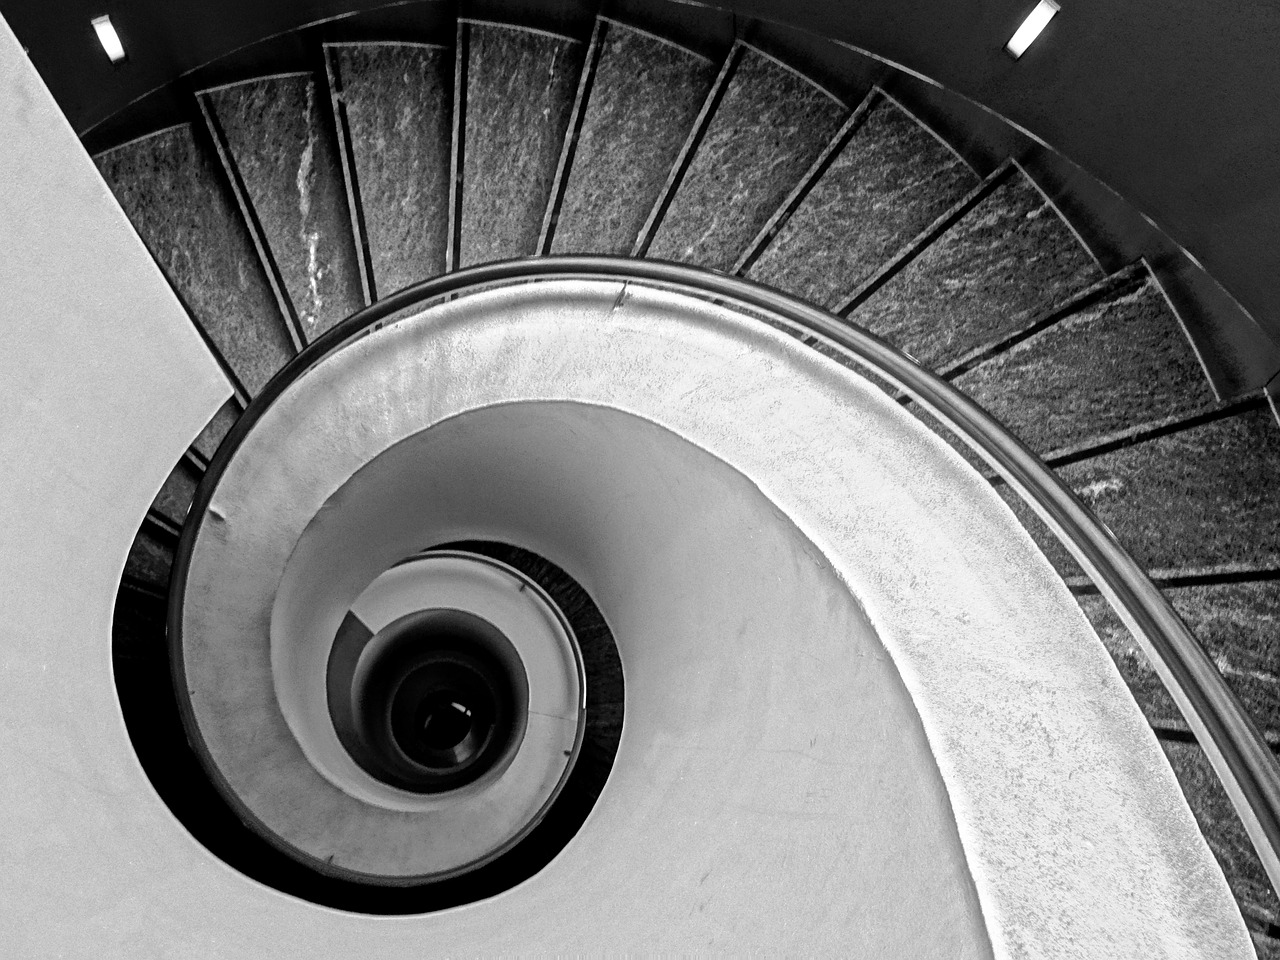 stairs, spiral staircase, spiral